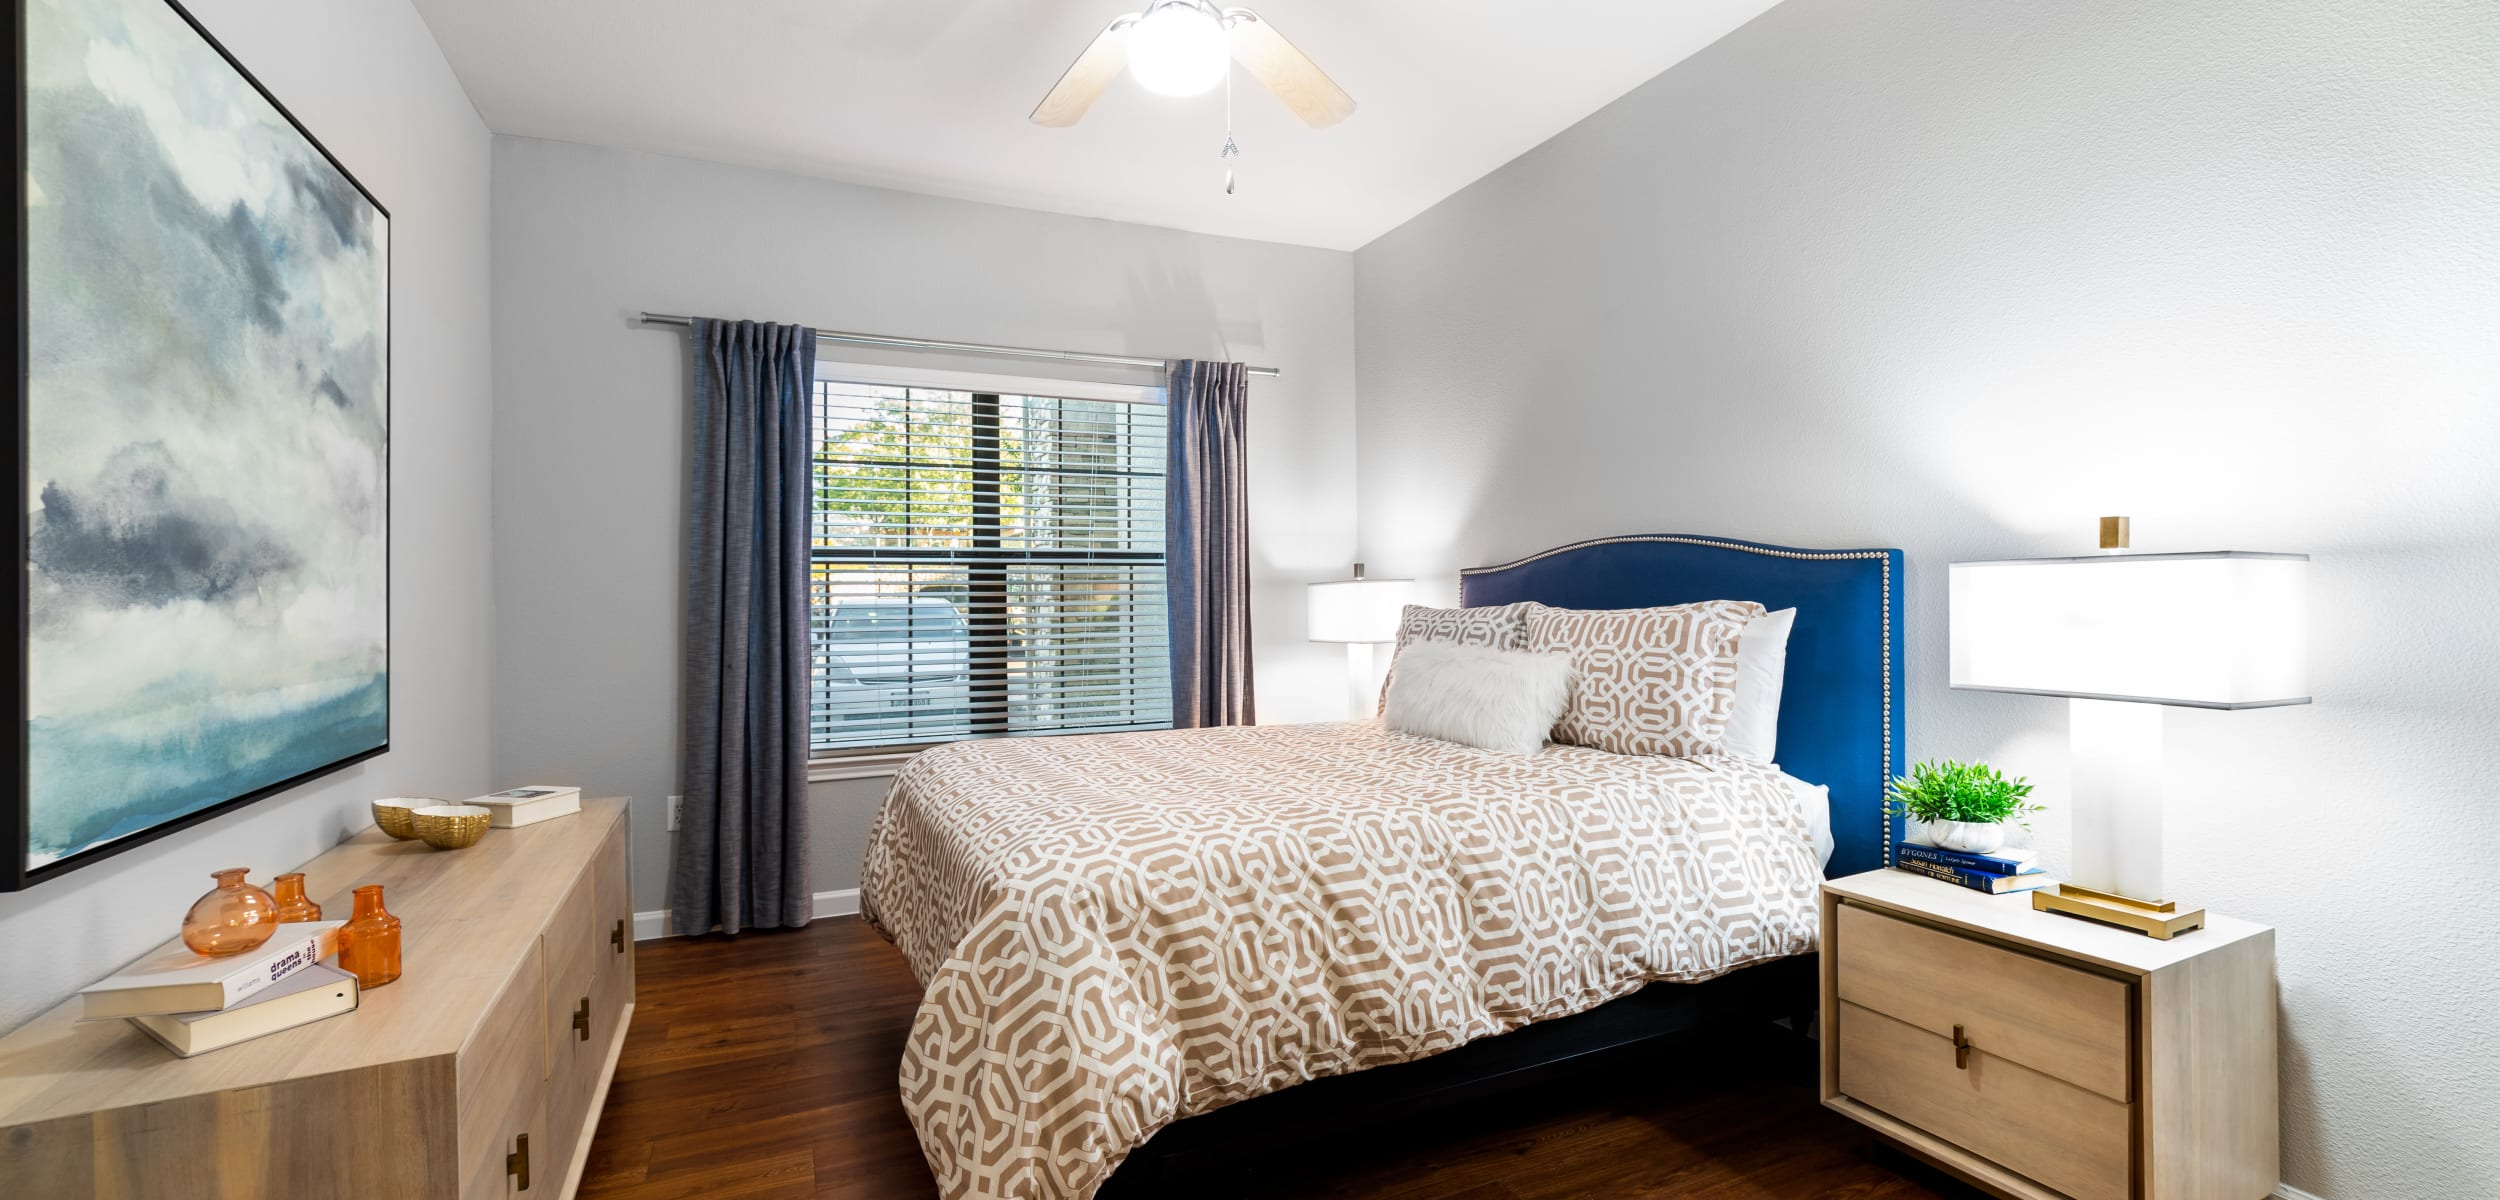 Bedroom with a large window at Marquis Parkside in Austin, Texas